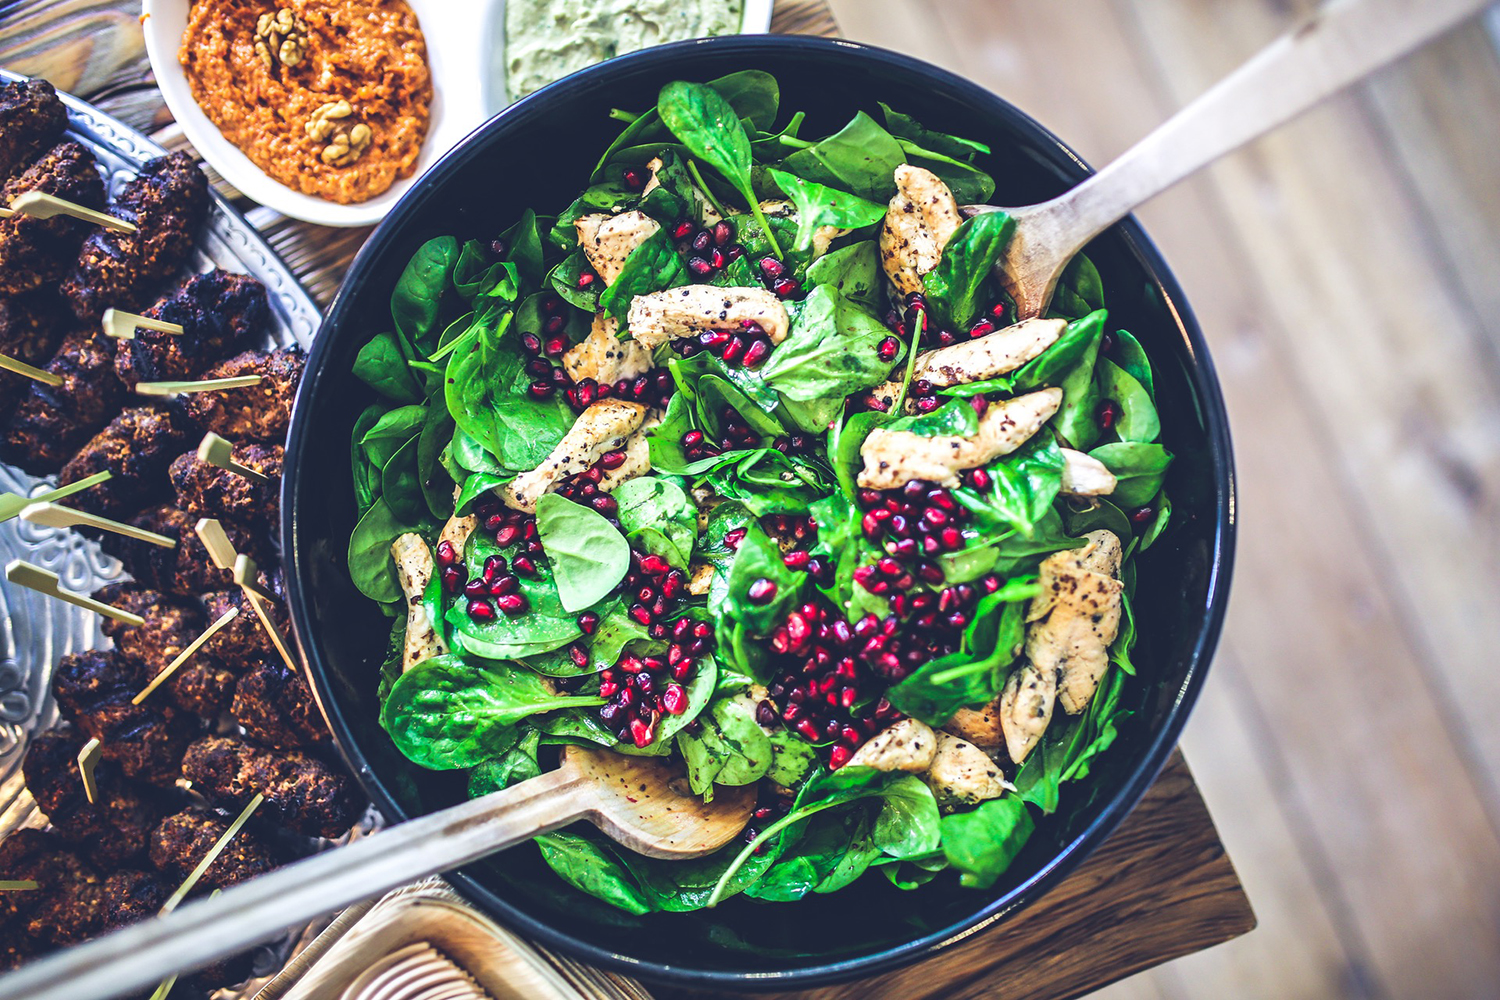 Healthy Meal. Chicken, Spinach and Pomegranate Salad